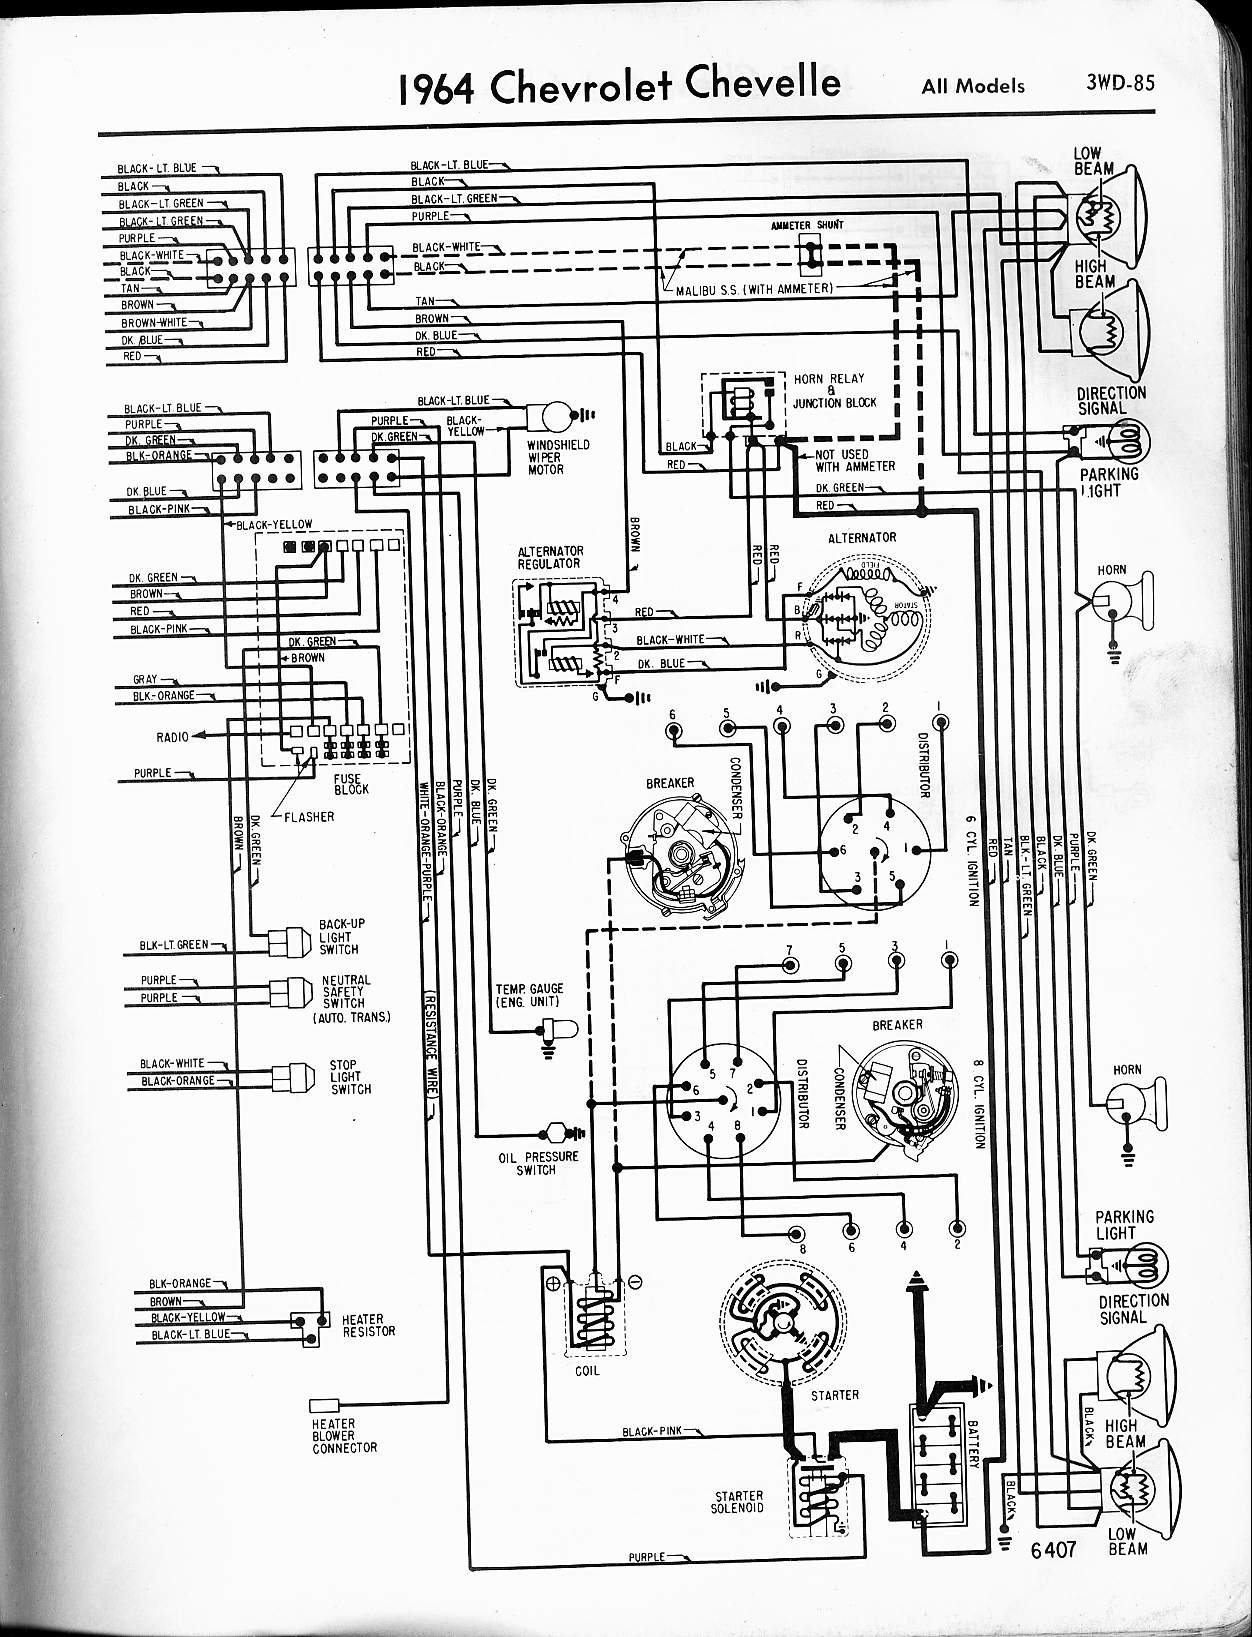 1966 Chevy C10 Wiring Diagram For Dash - Wiring Diagram •